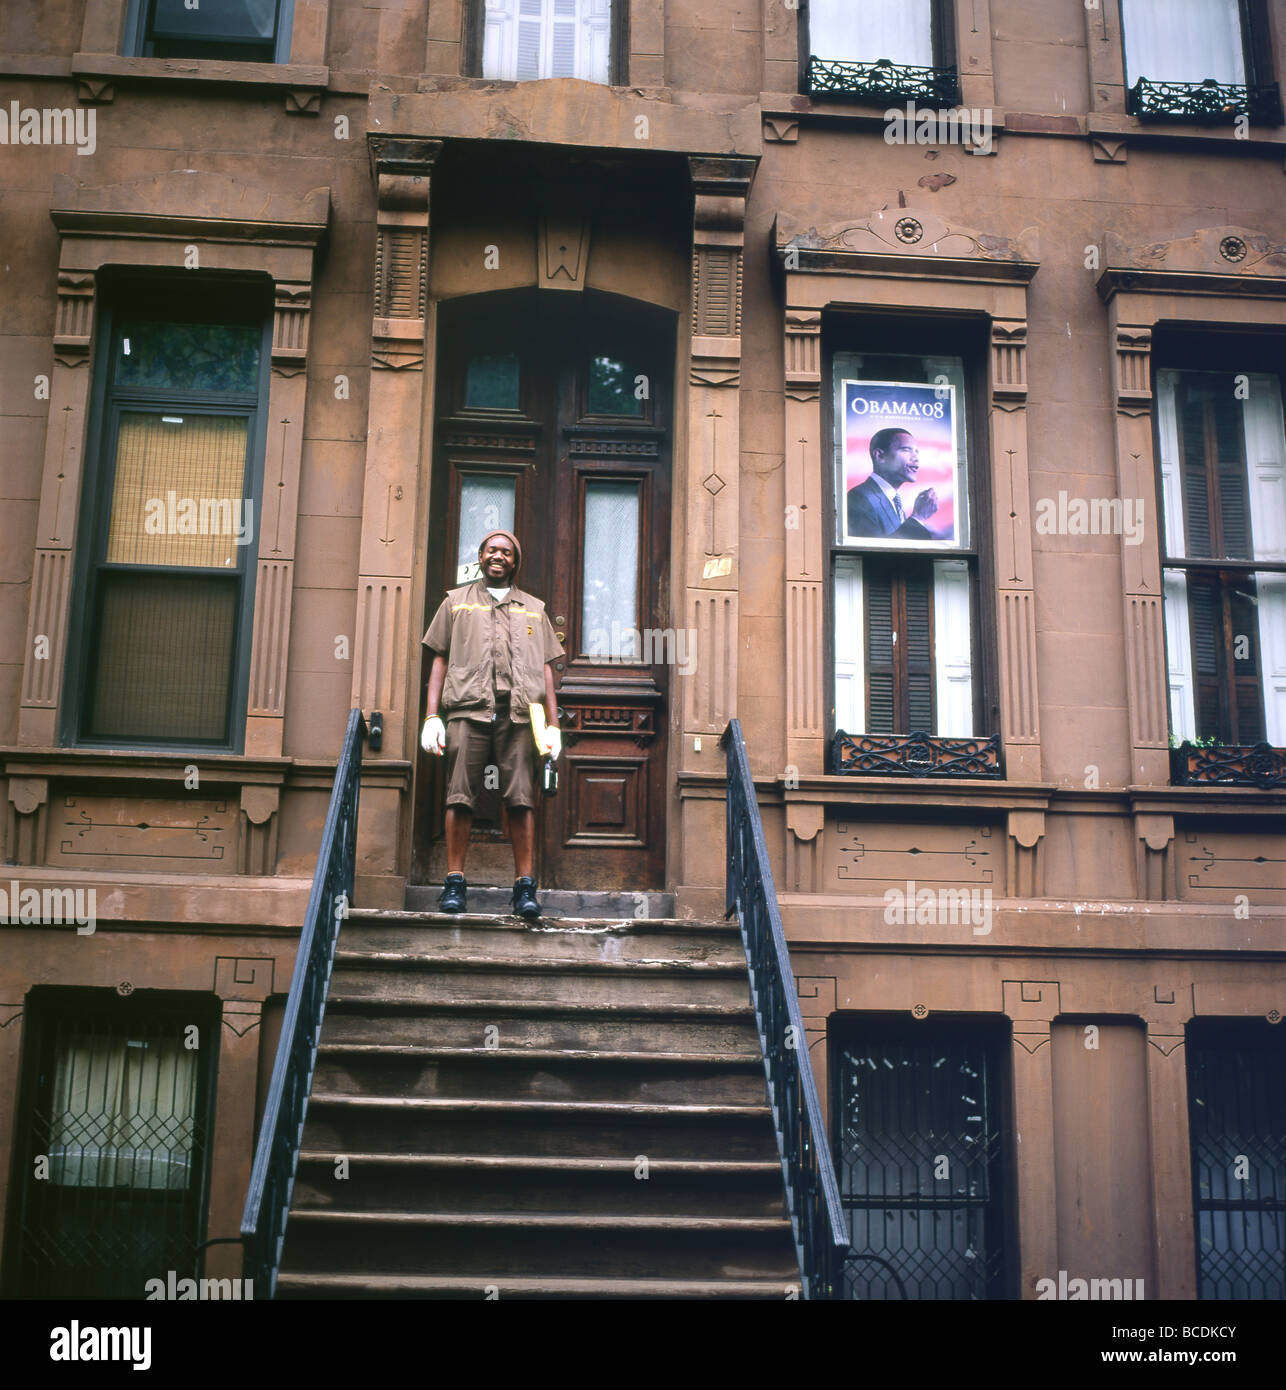 Harlem New York Apartments: A Delivery Man Standing On The Steps Of A Brownstone